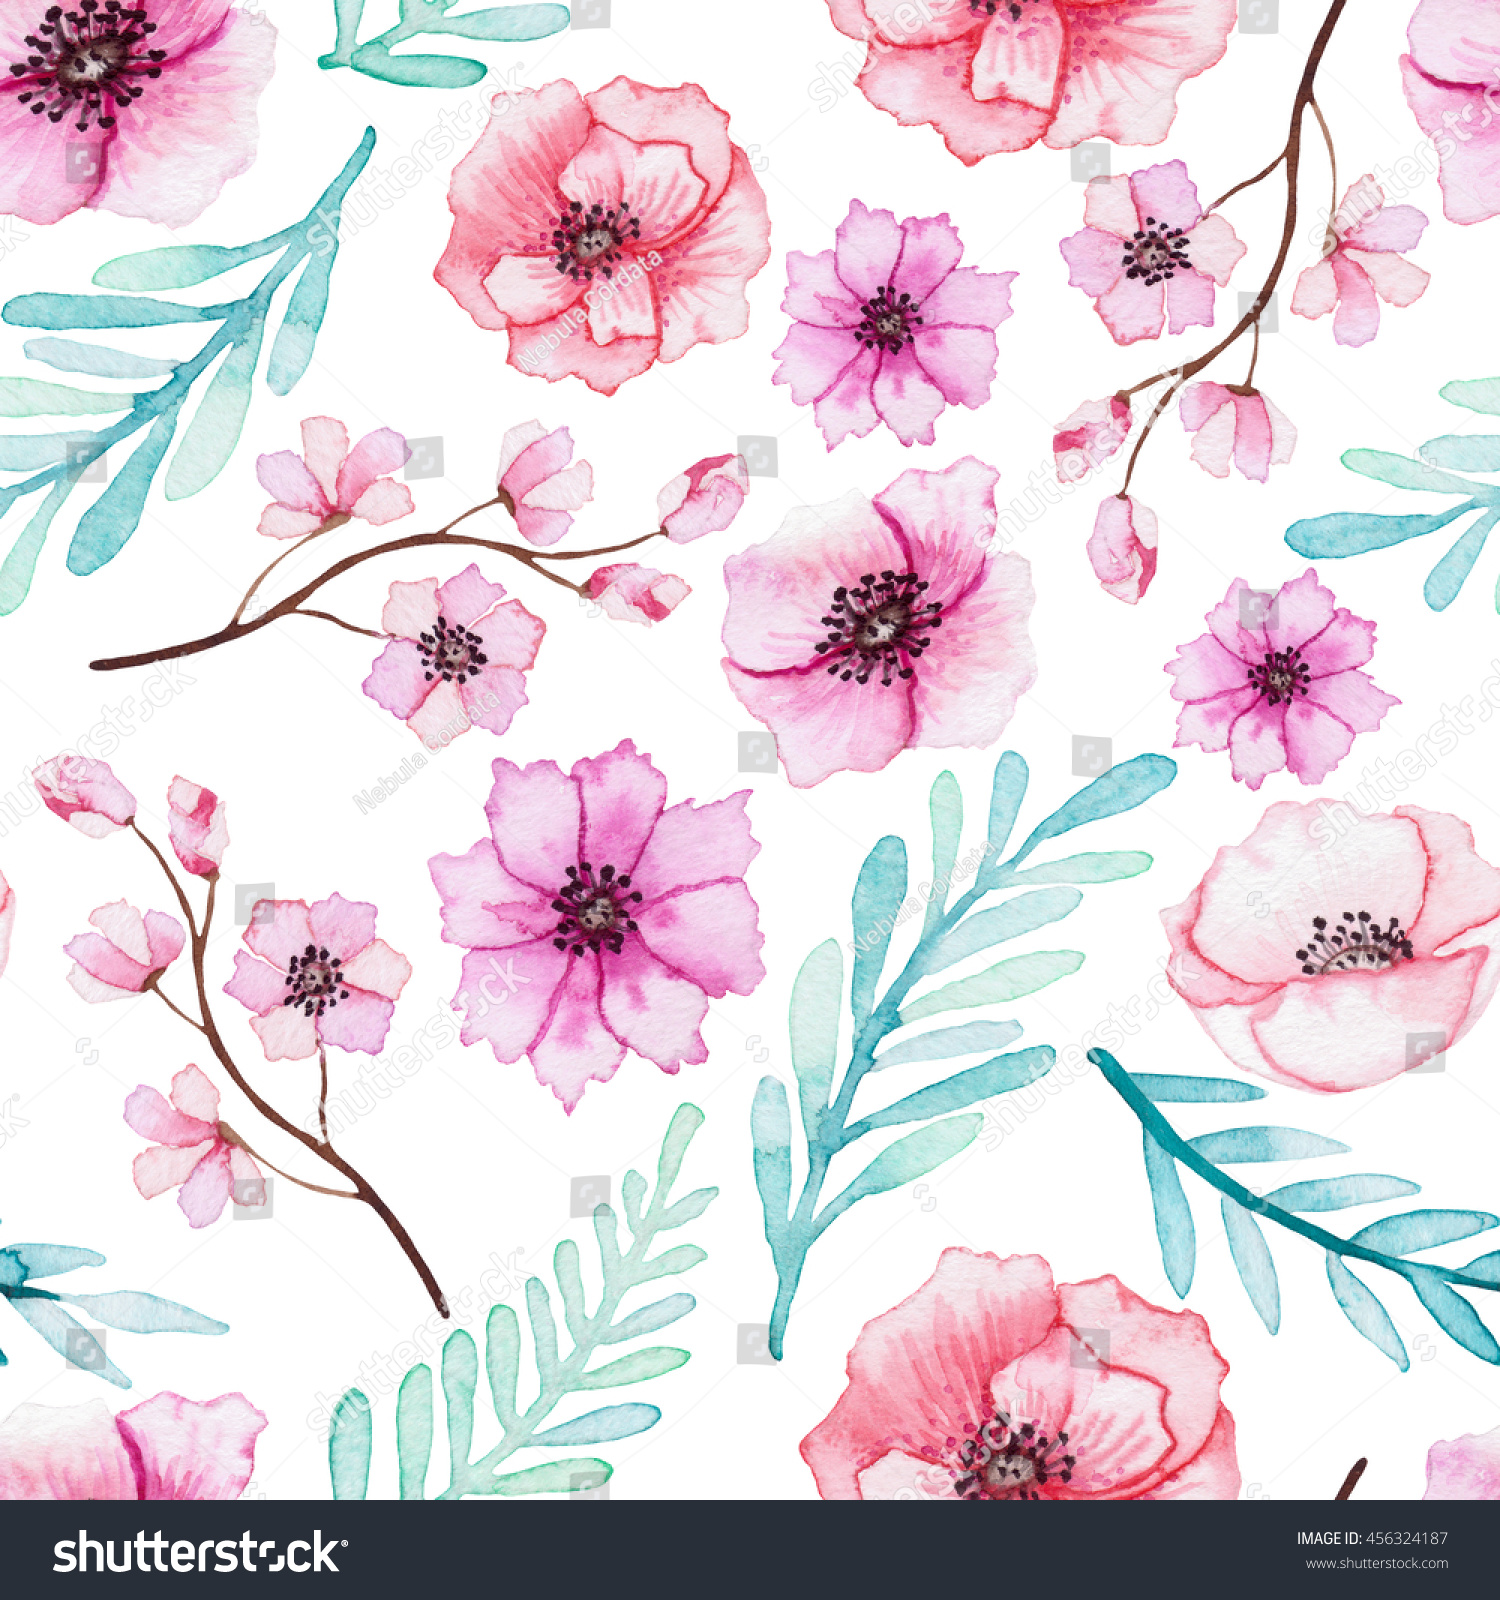 Watercolor Red And Pink Flowers And Blue Leaves Seamless Pattern